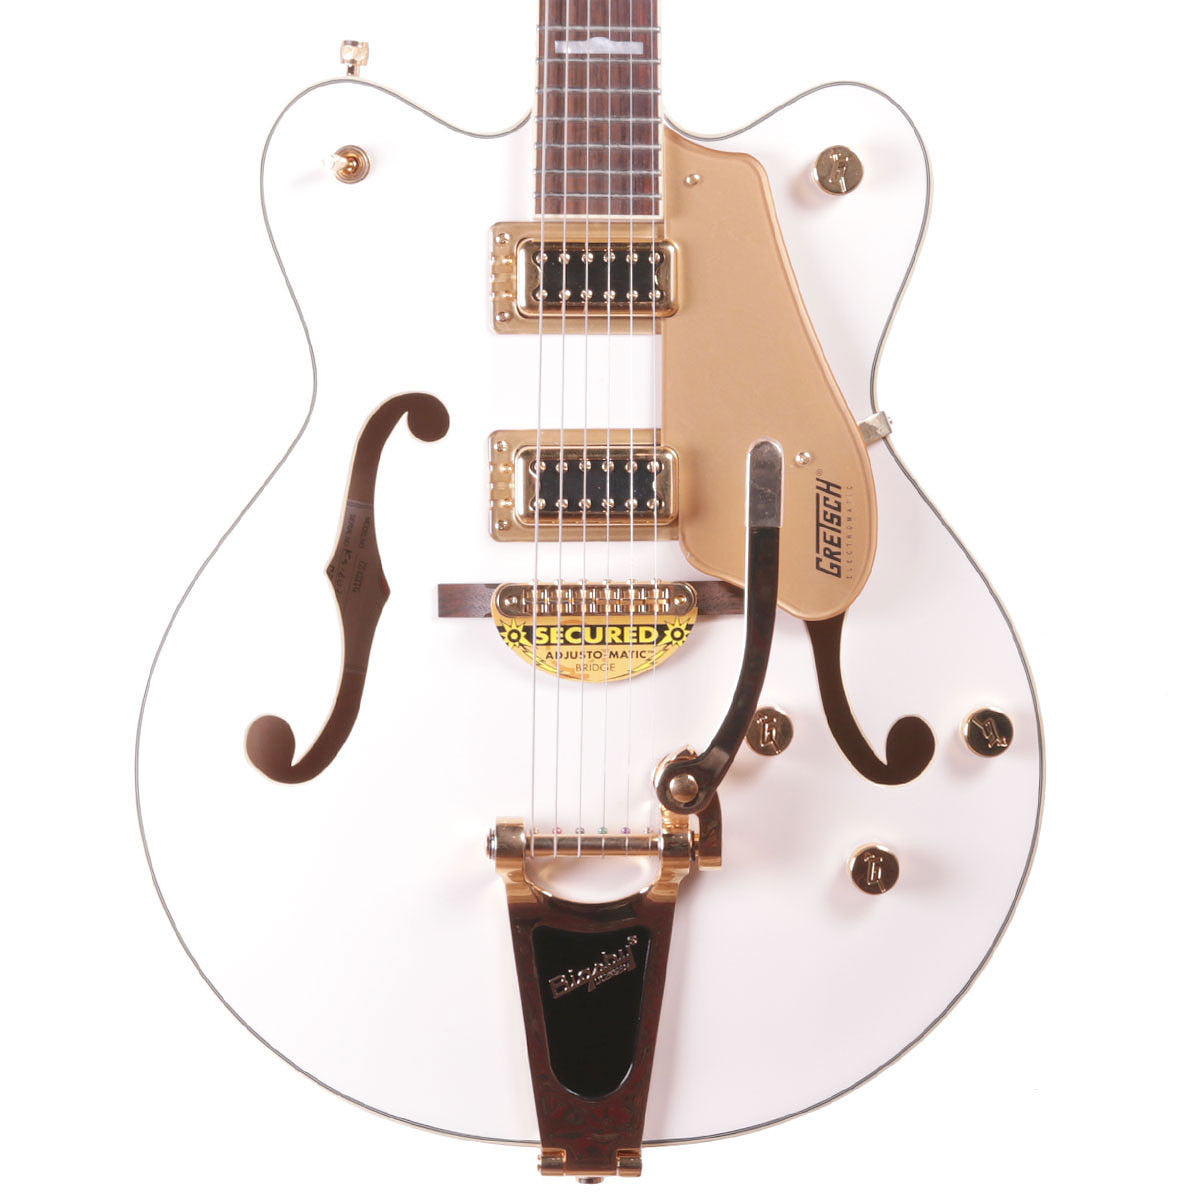 Gretsch G5422TG 2016 Electromatic Hollowbody w/Bigsby - White - Vintage Guitar Boutique - 1